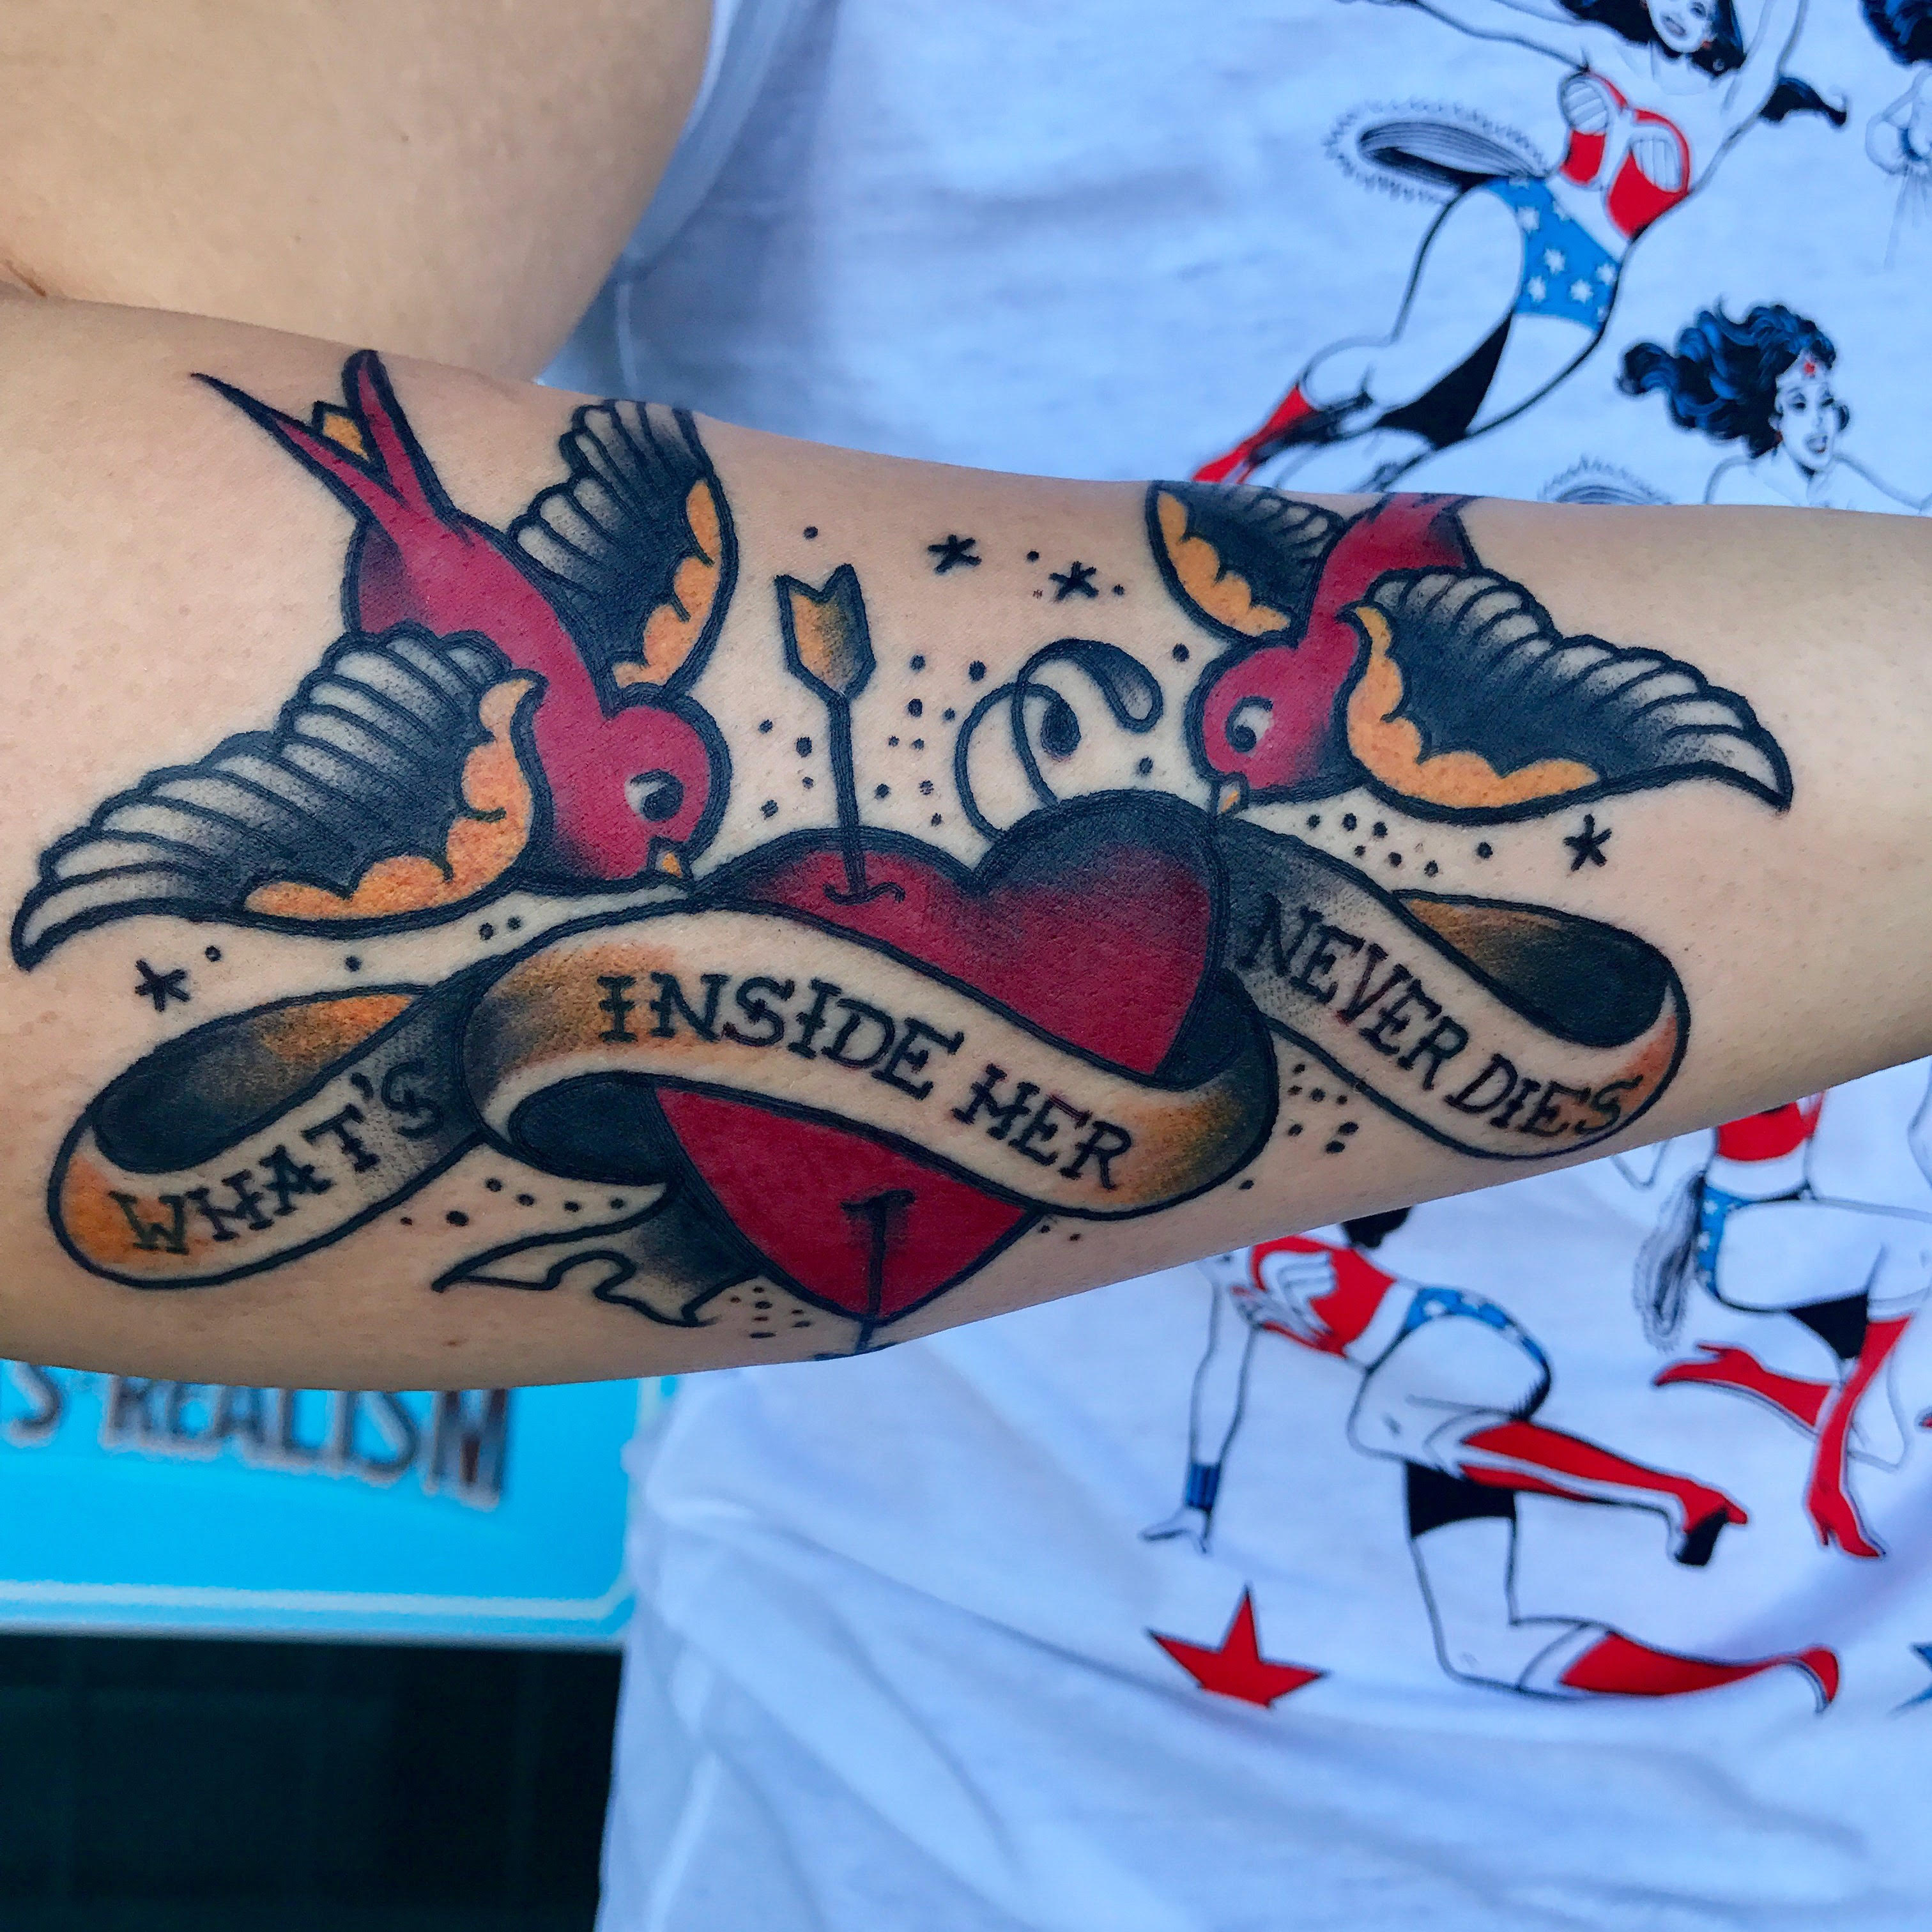 Sailor Jerry Tattoo by Krystof